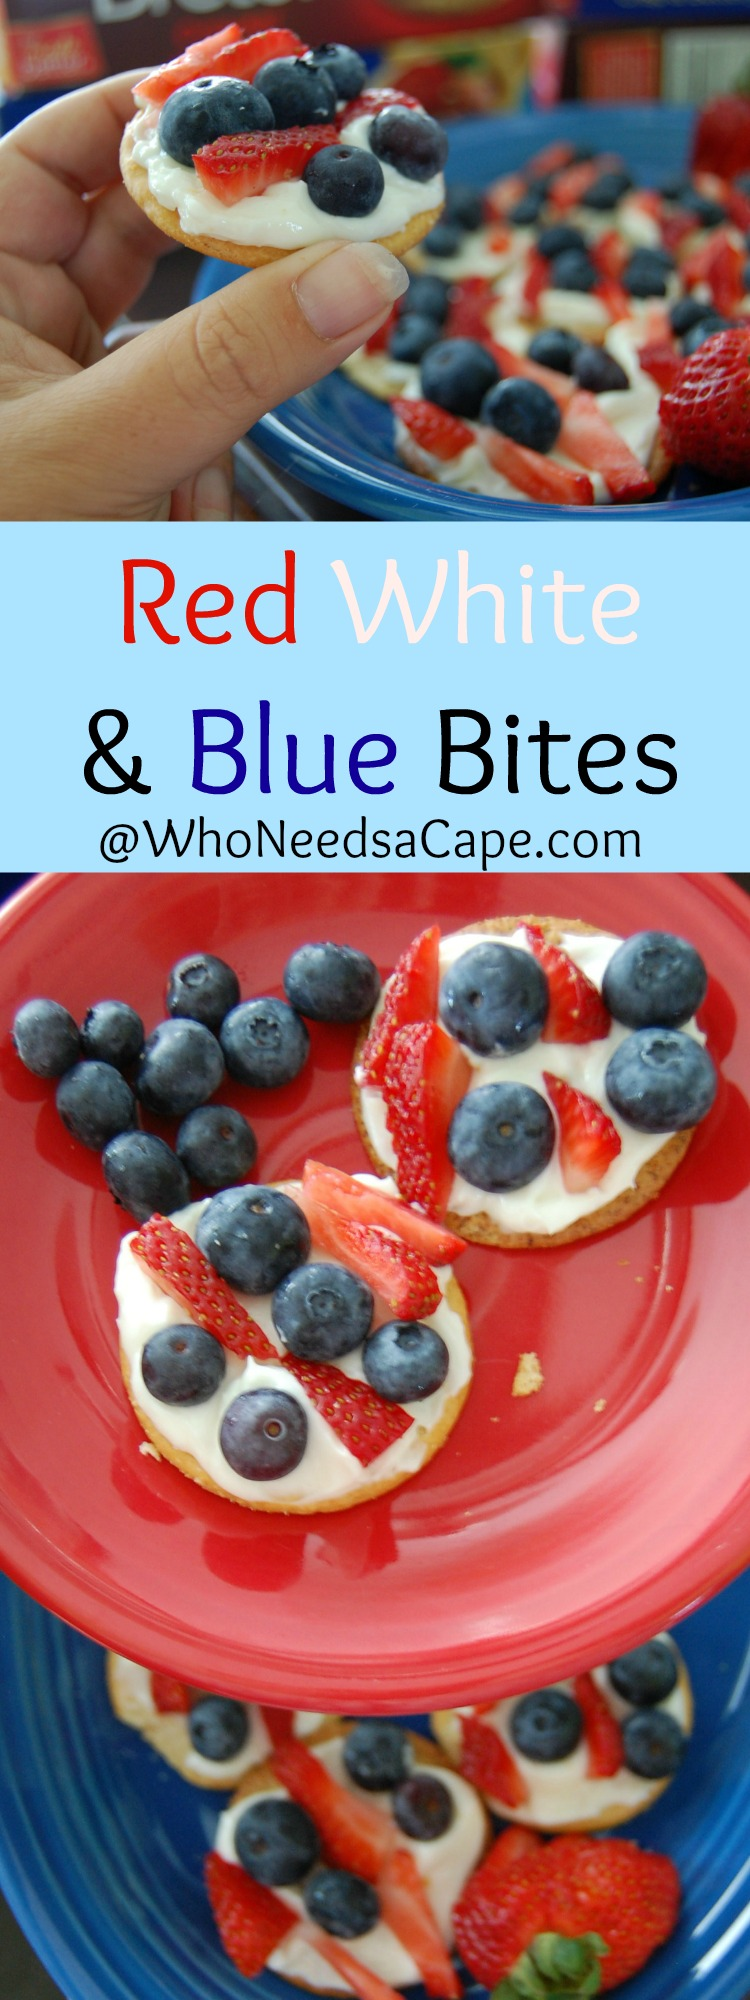 The Simplest Desserts to serve are sometimes the best - Red White and Blue Bites are super tasty and easy! Perfect summer snack or treat!